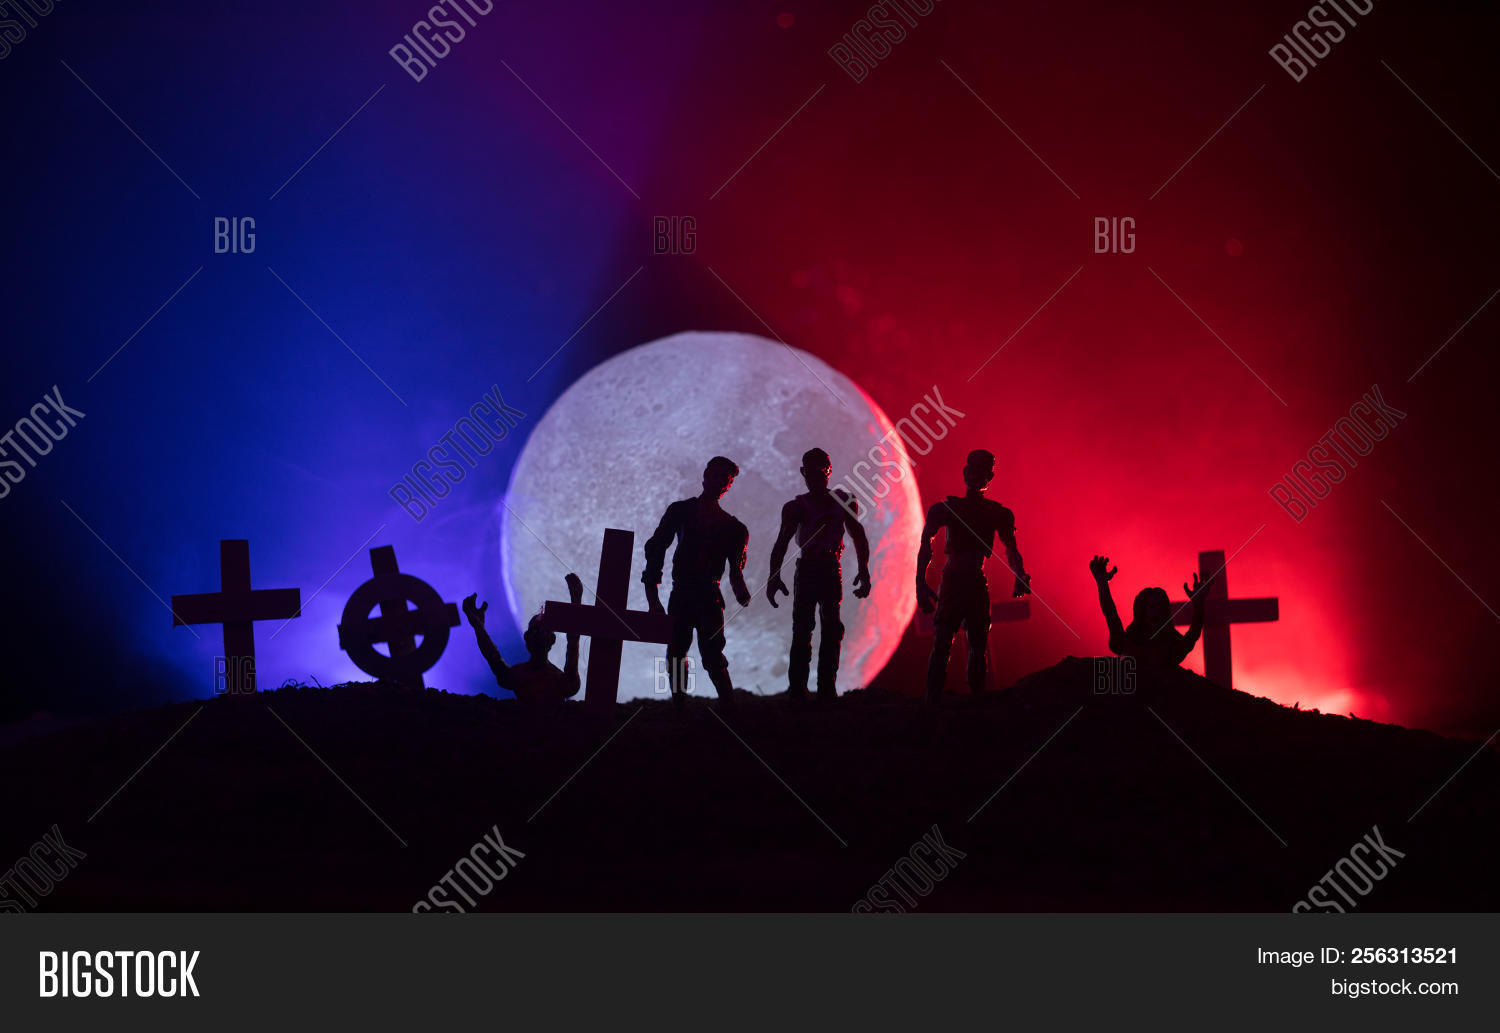 Scary View Zombies Image & Photo (Free Trial)   Bigstock